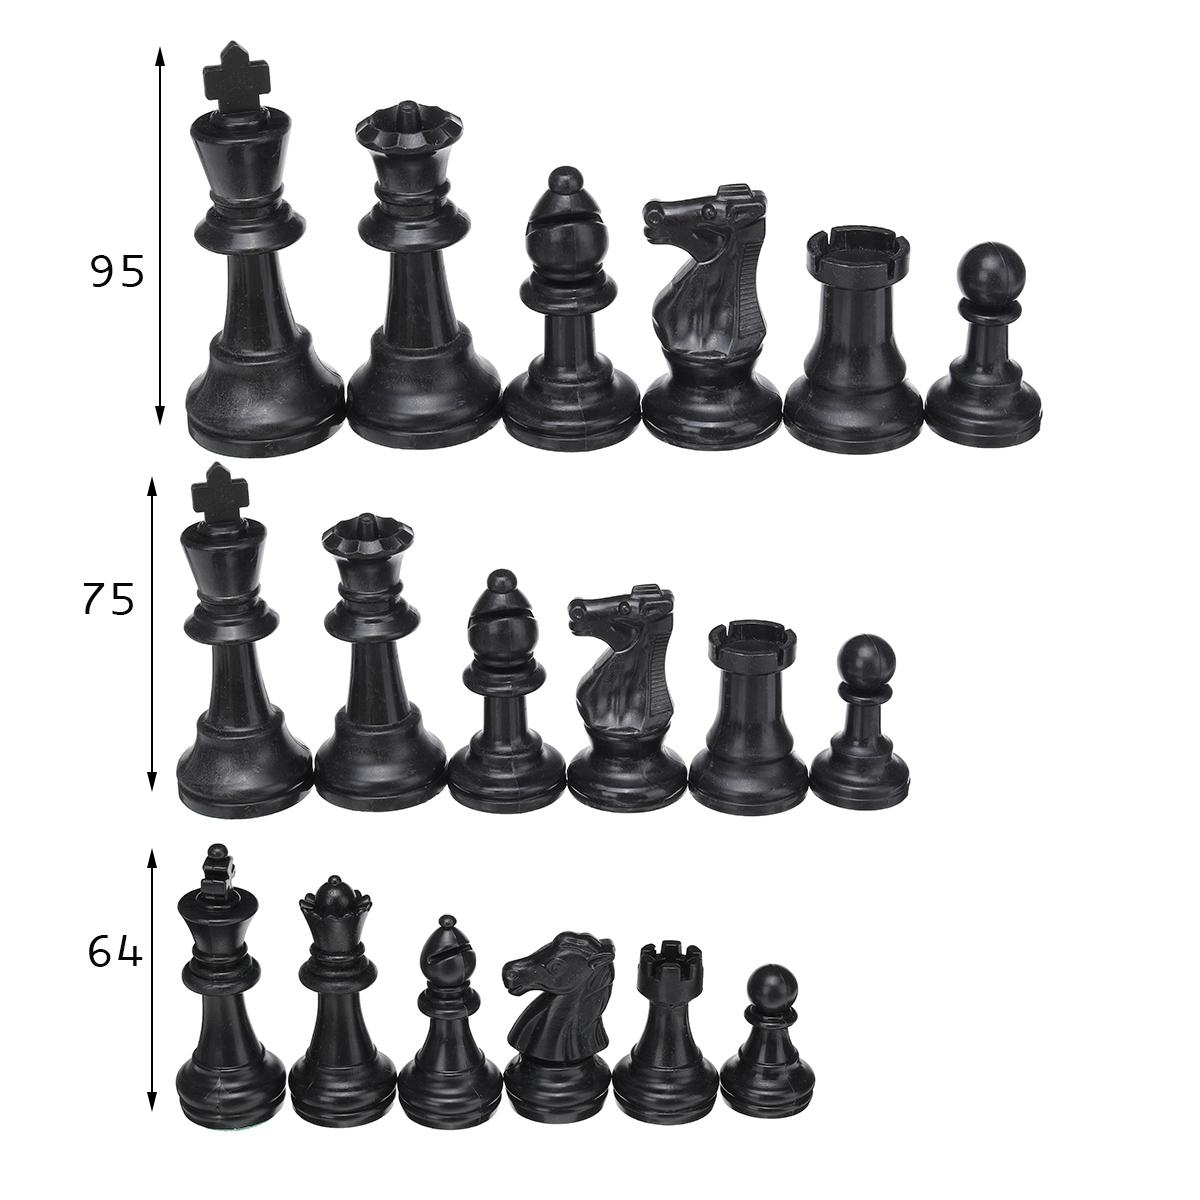 32PCS Chess Pieces Plastic Complete Chessmen International Word Chess Game Entertainment without Chess Board 9.5cm /7.5cm/6.4cm